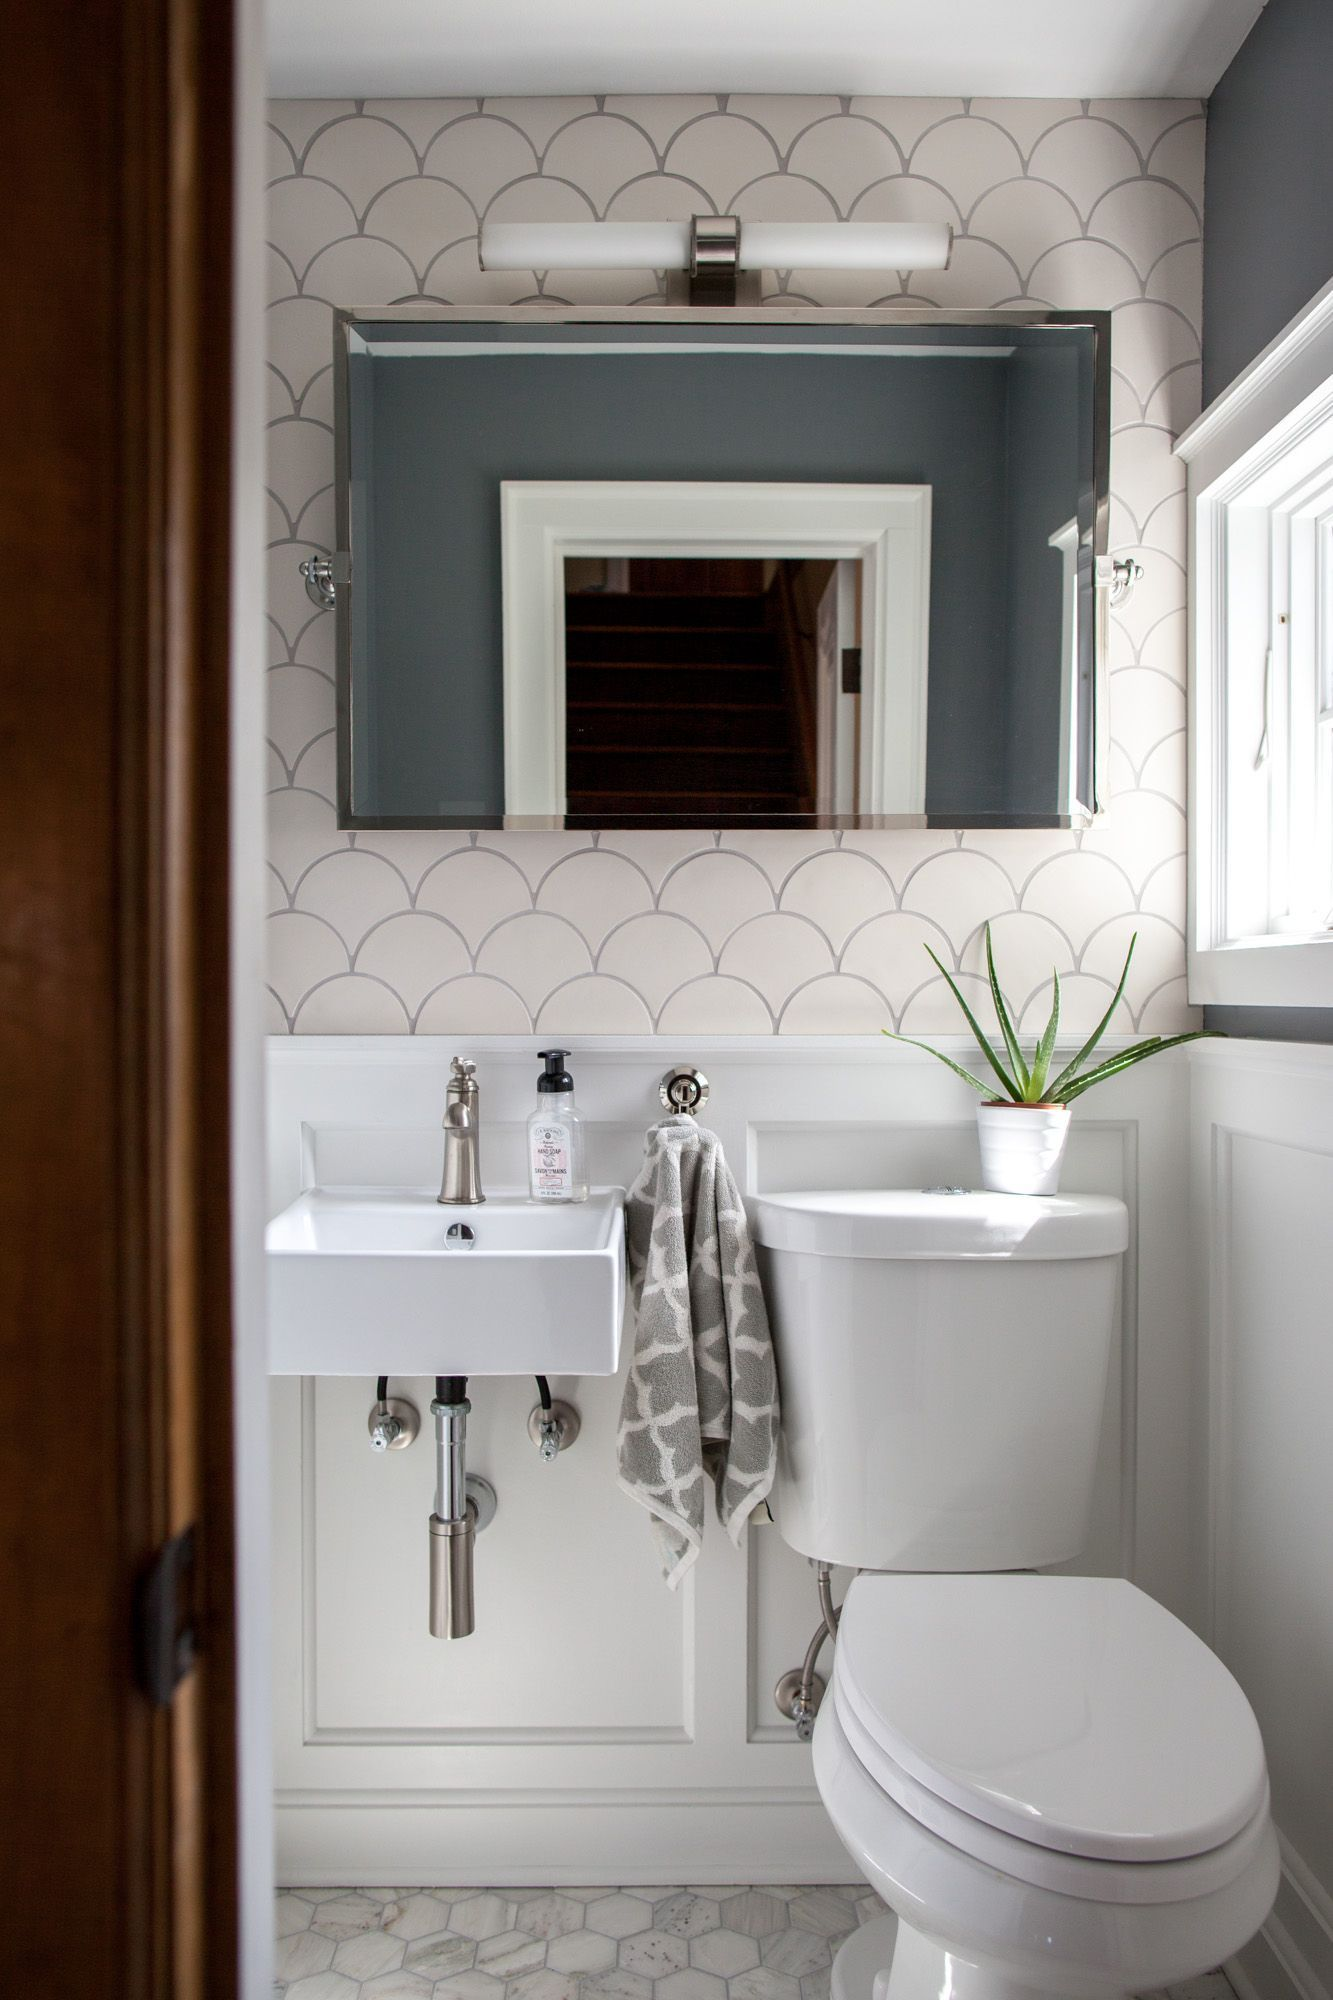 Crazy And Beautiful Tiny Powder Room With Color And Tile Fish